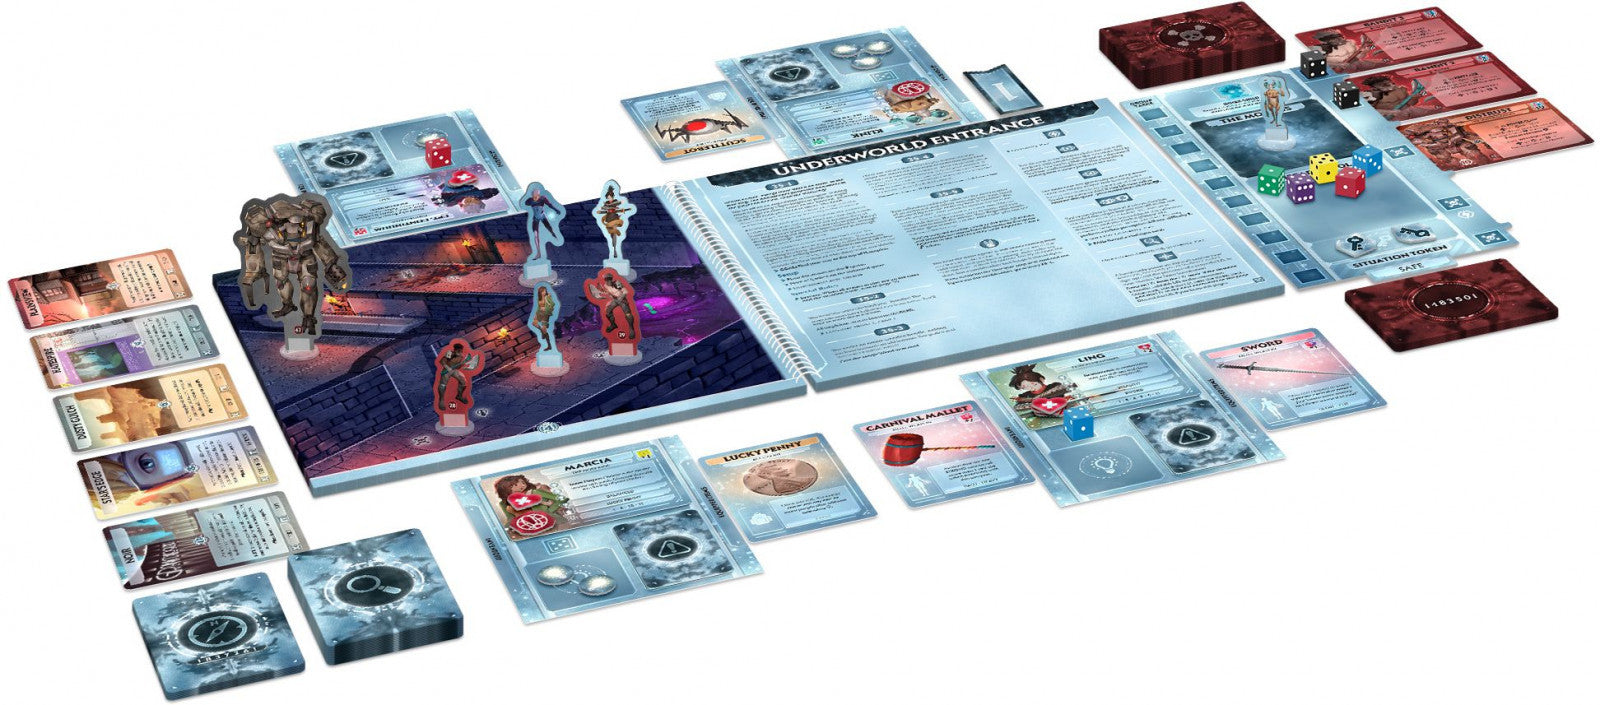 Comanauts - The Adventure Book Game